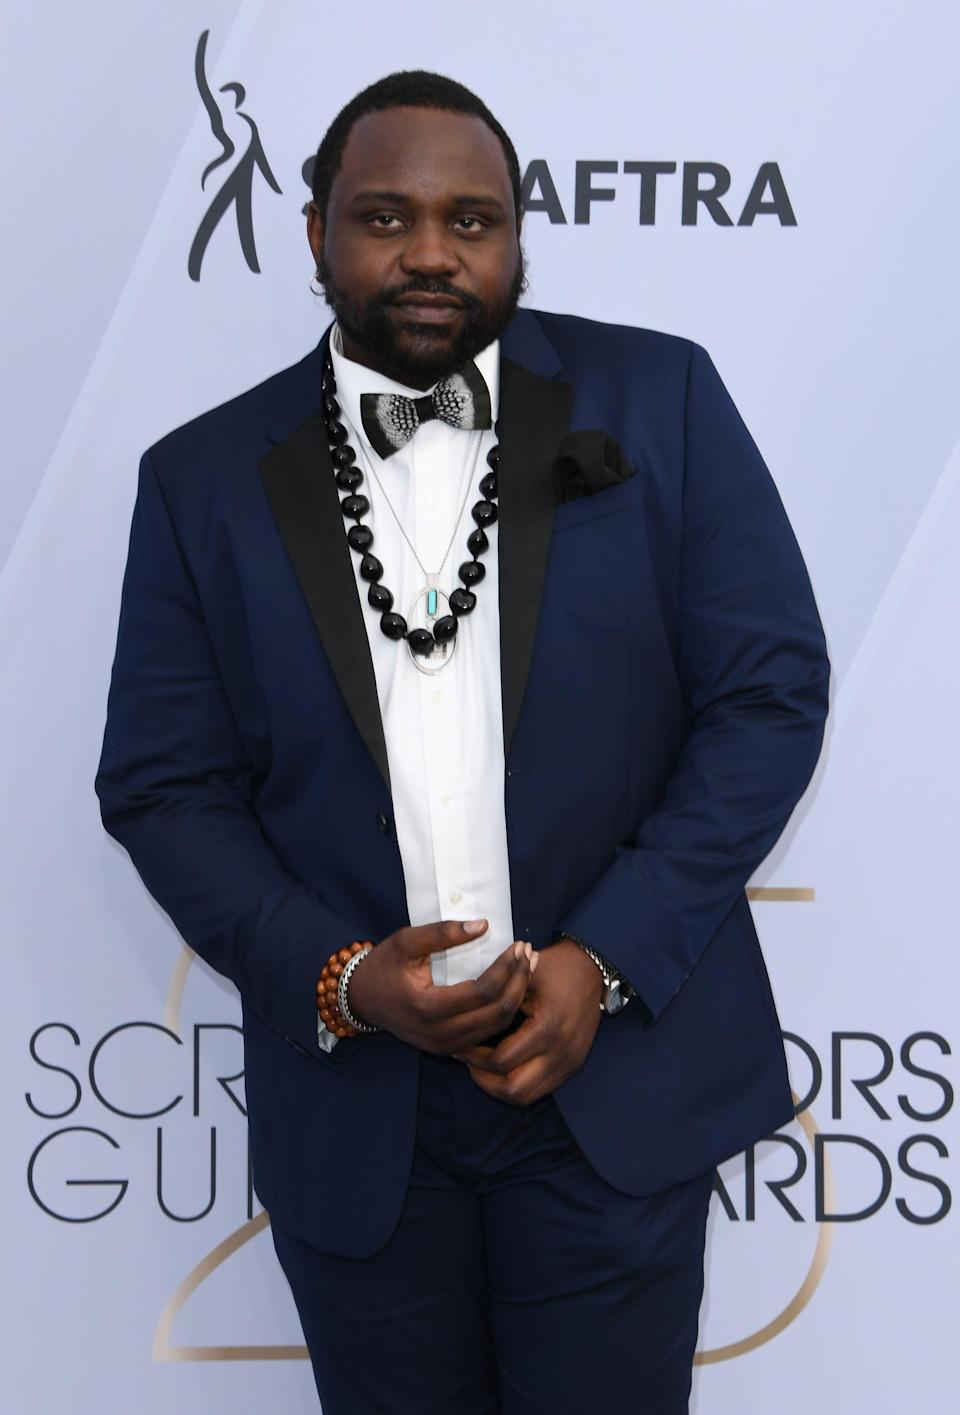 <p>Wearing a navy suit with a bow tie and black necklace. </p>